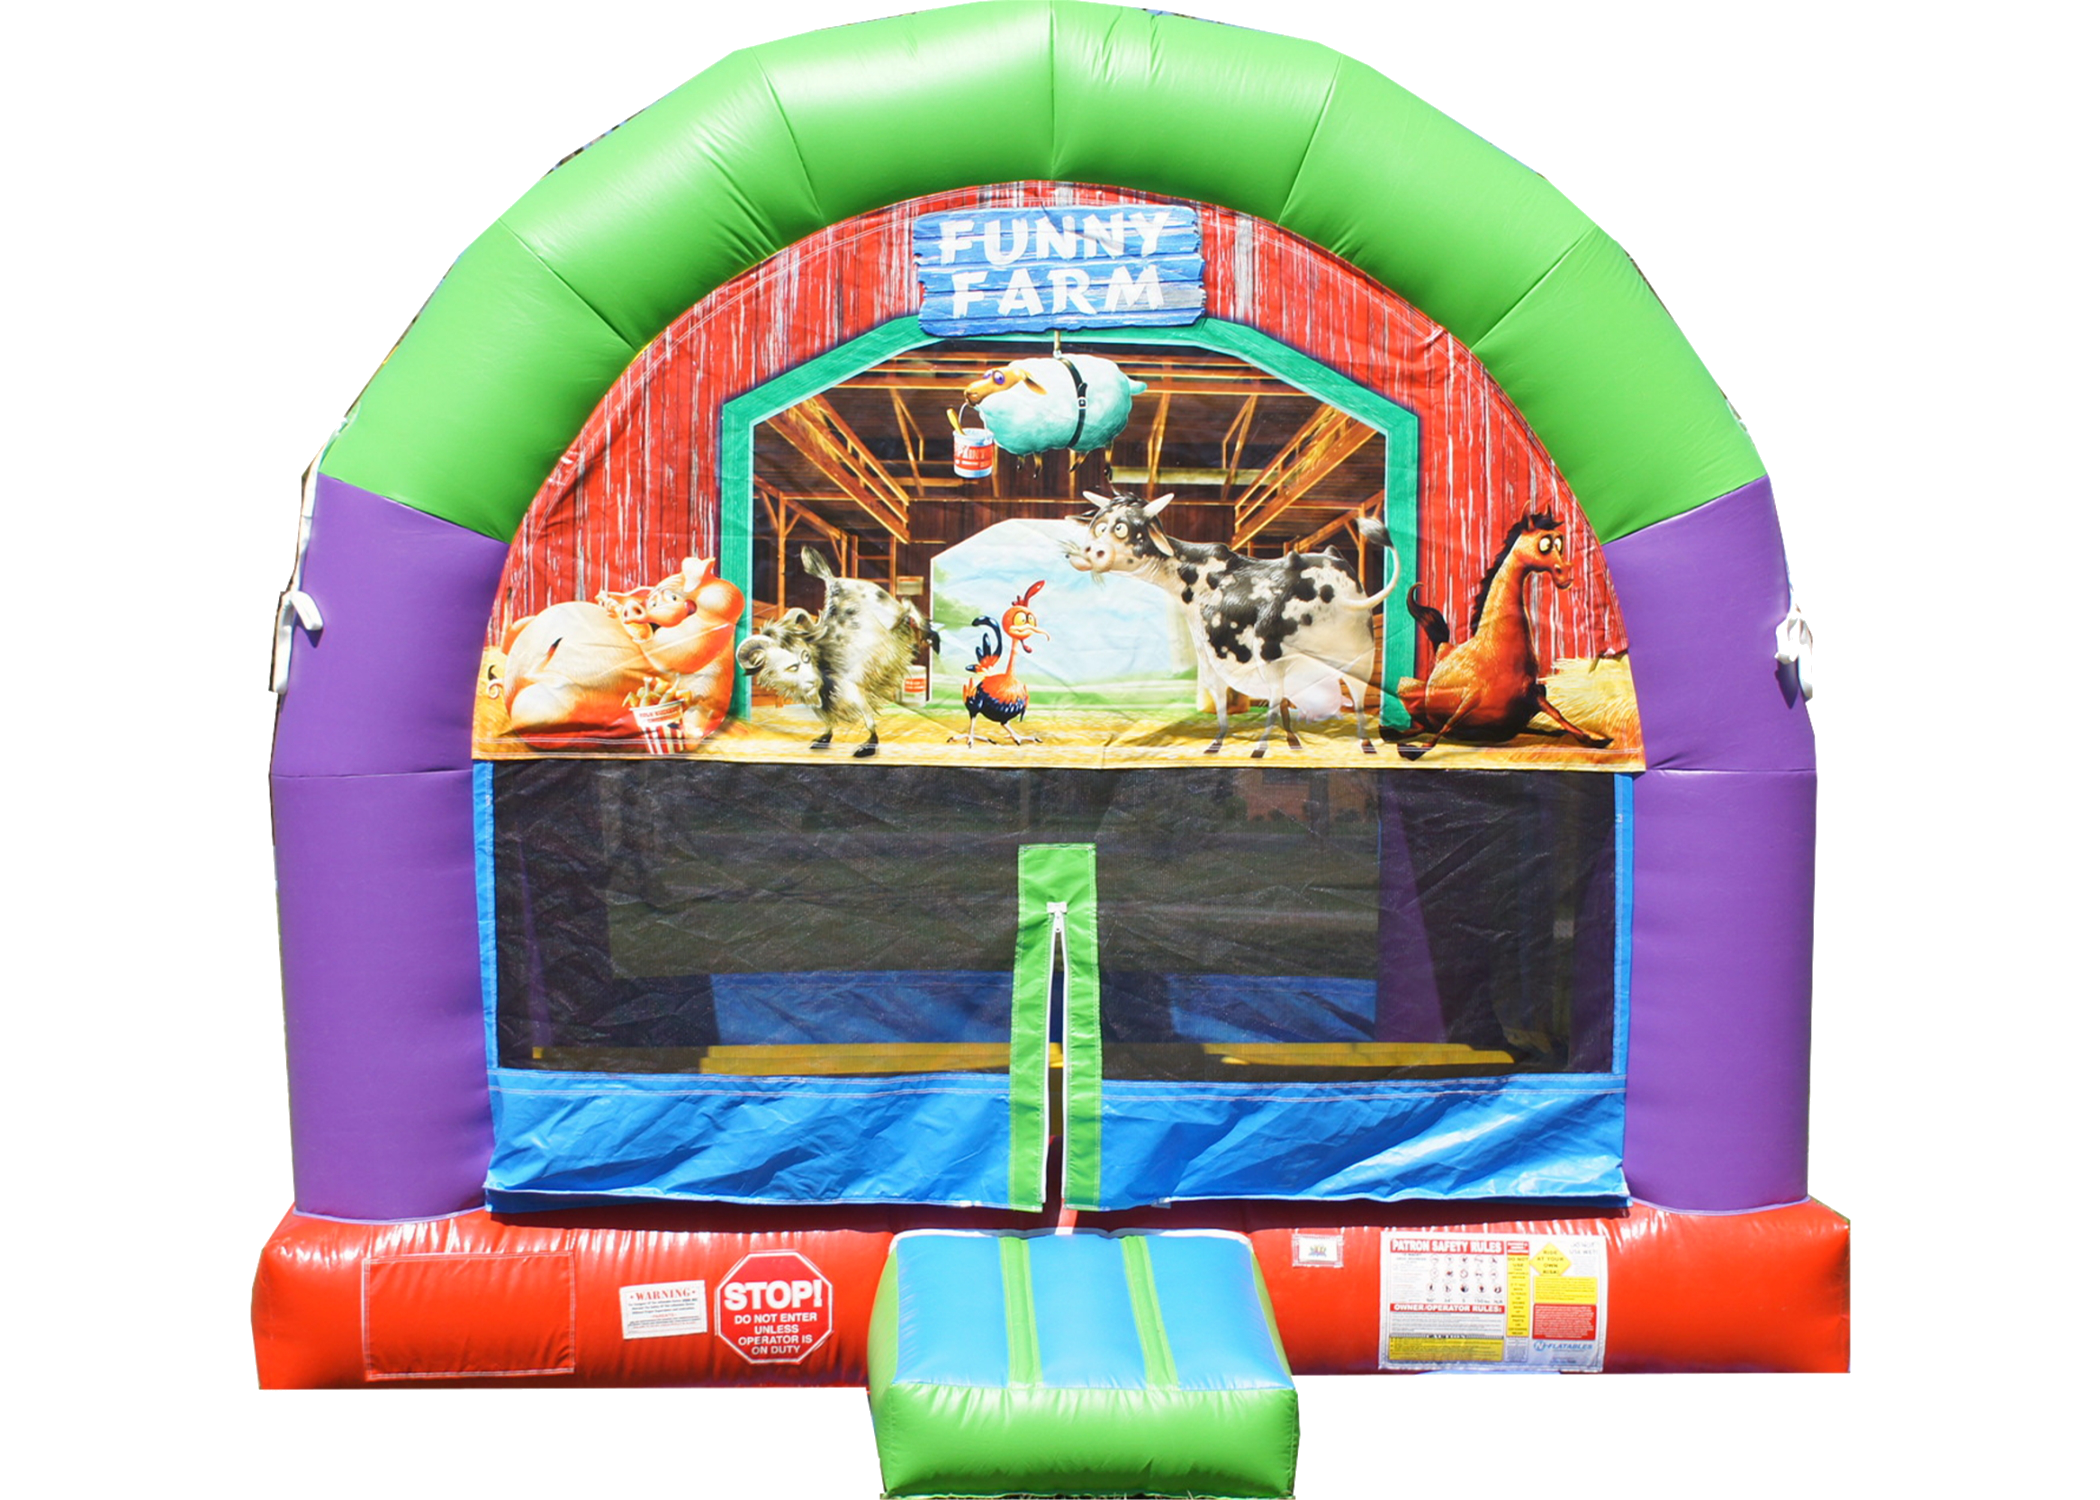 farm bounce house Nashville